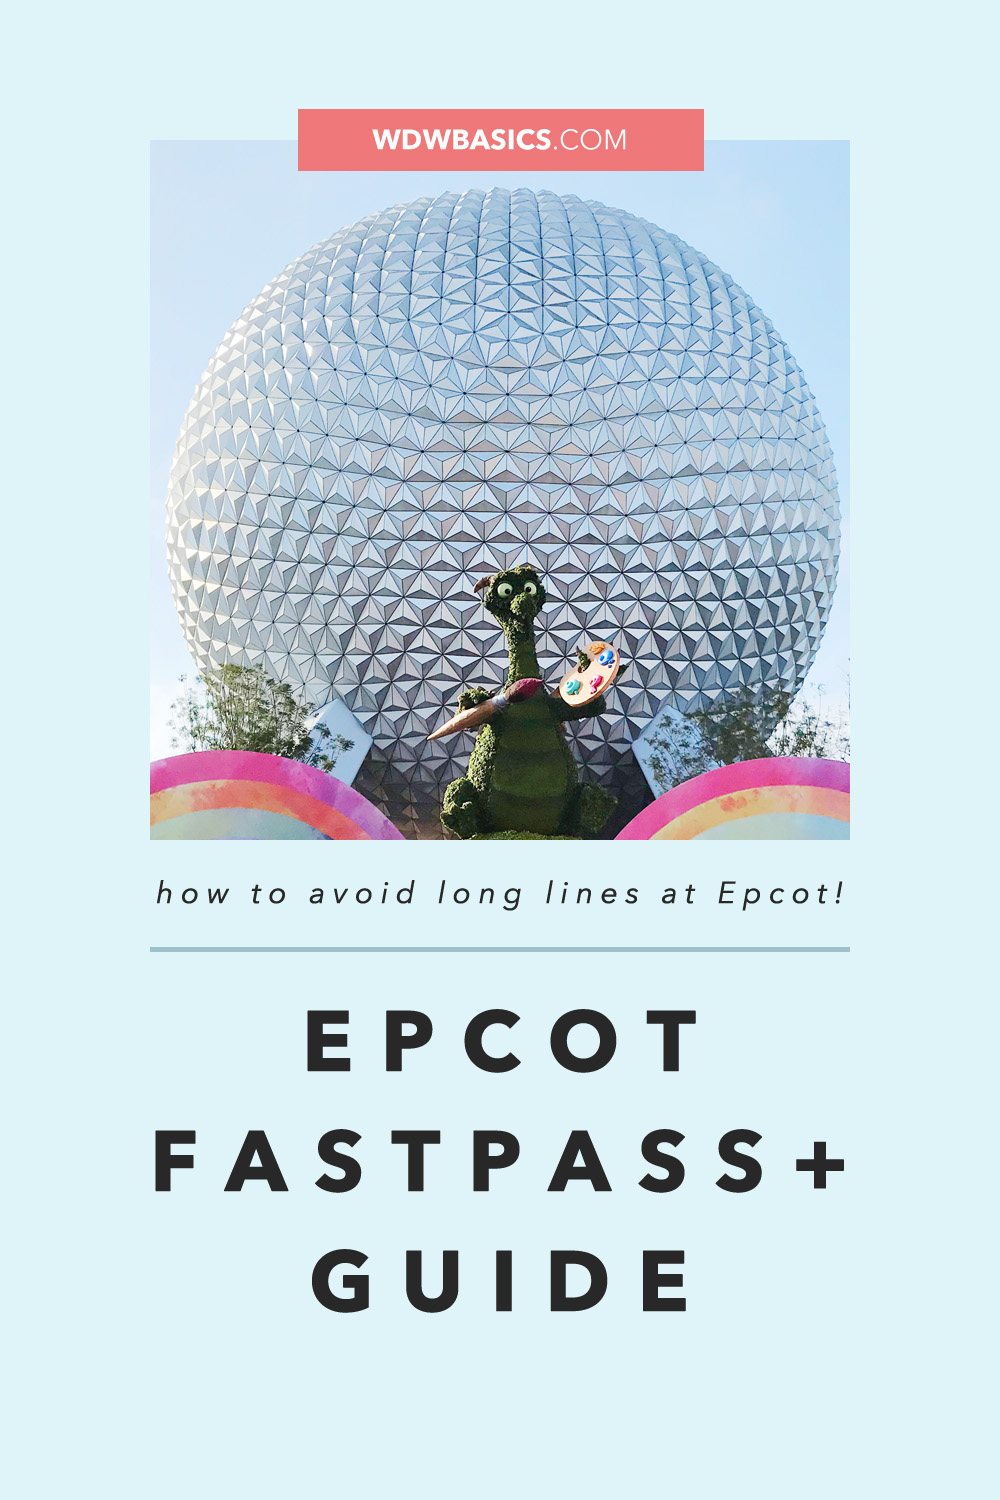 Epcot FastPass+ Guide